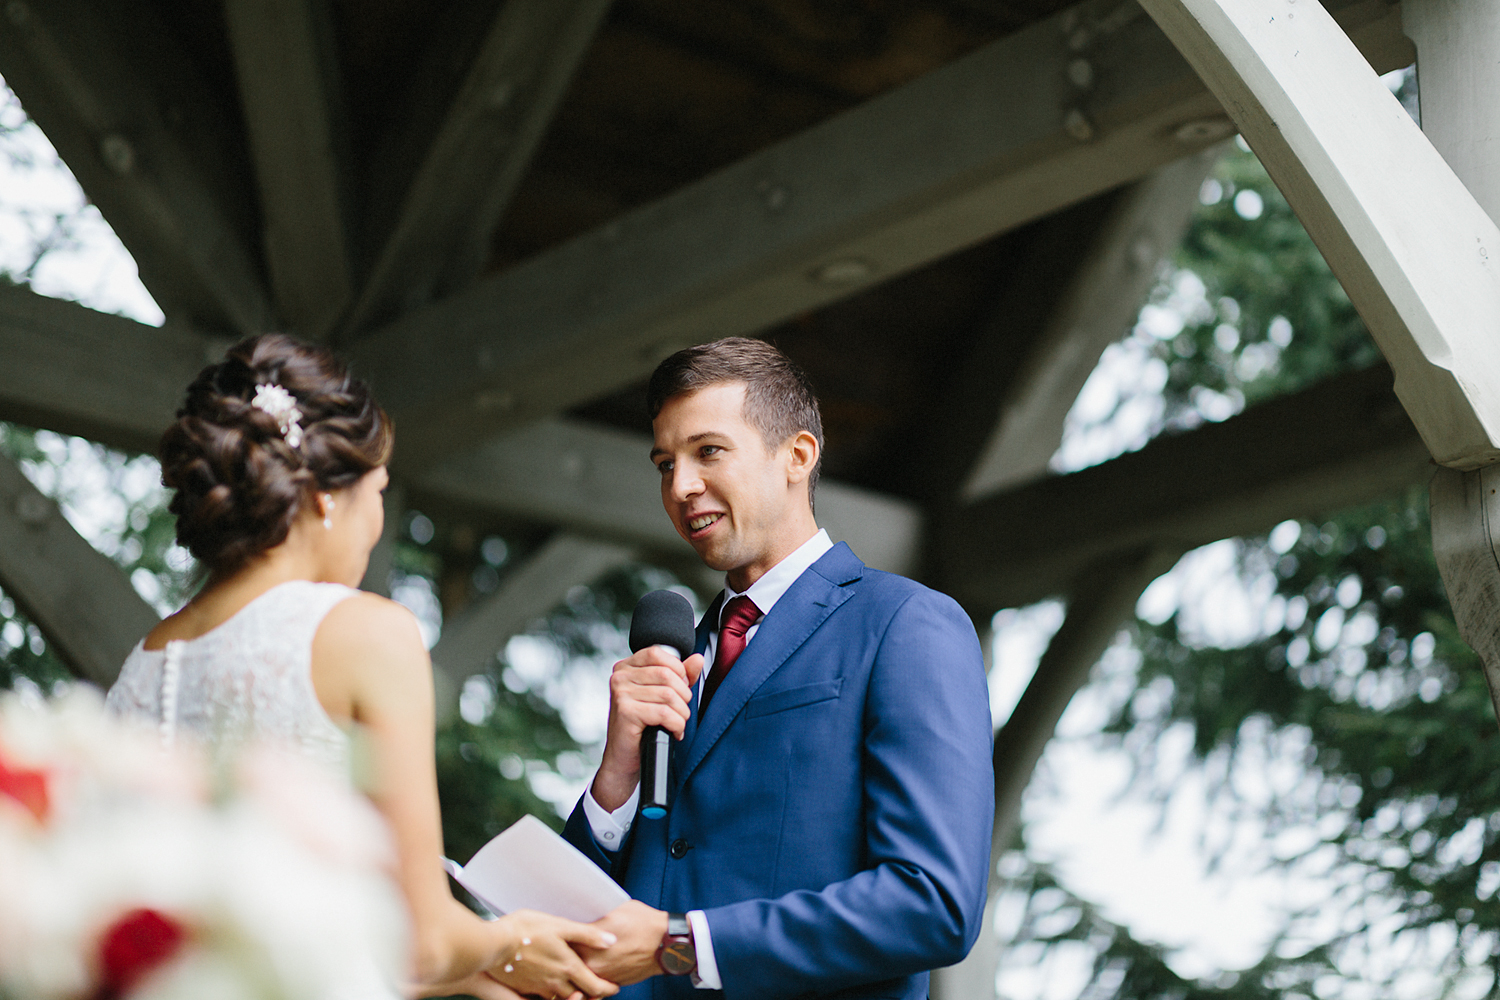 bellamere-winery-ceremony-rustic-groom-saying-vows-guests-laughing-smiling-cinematic-toronto's-best-wedding-photographers-candid-documentary-style-photography-london-ontario-winery-wedding-inspiration.jpg